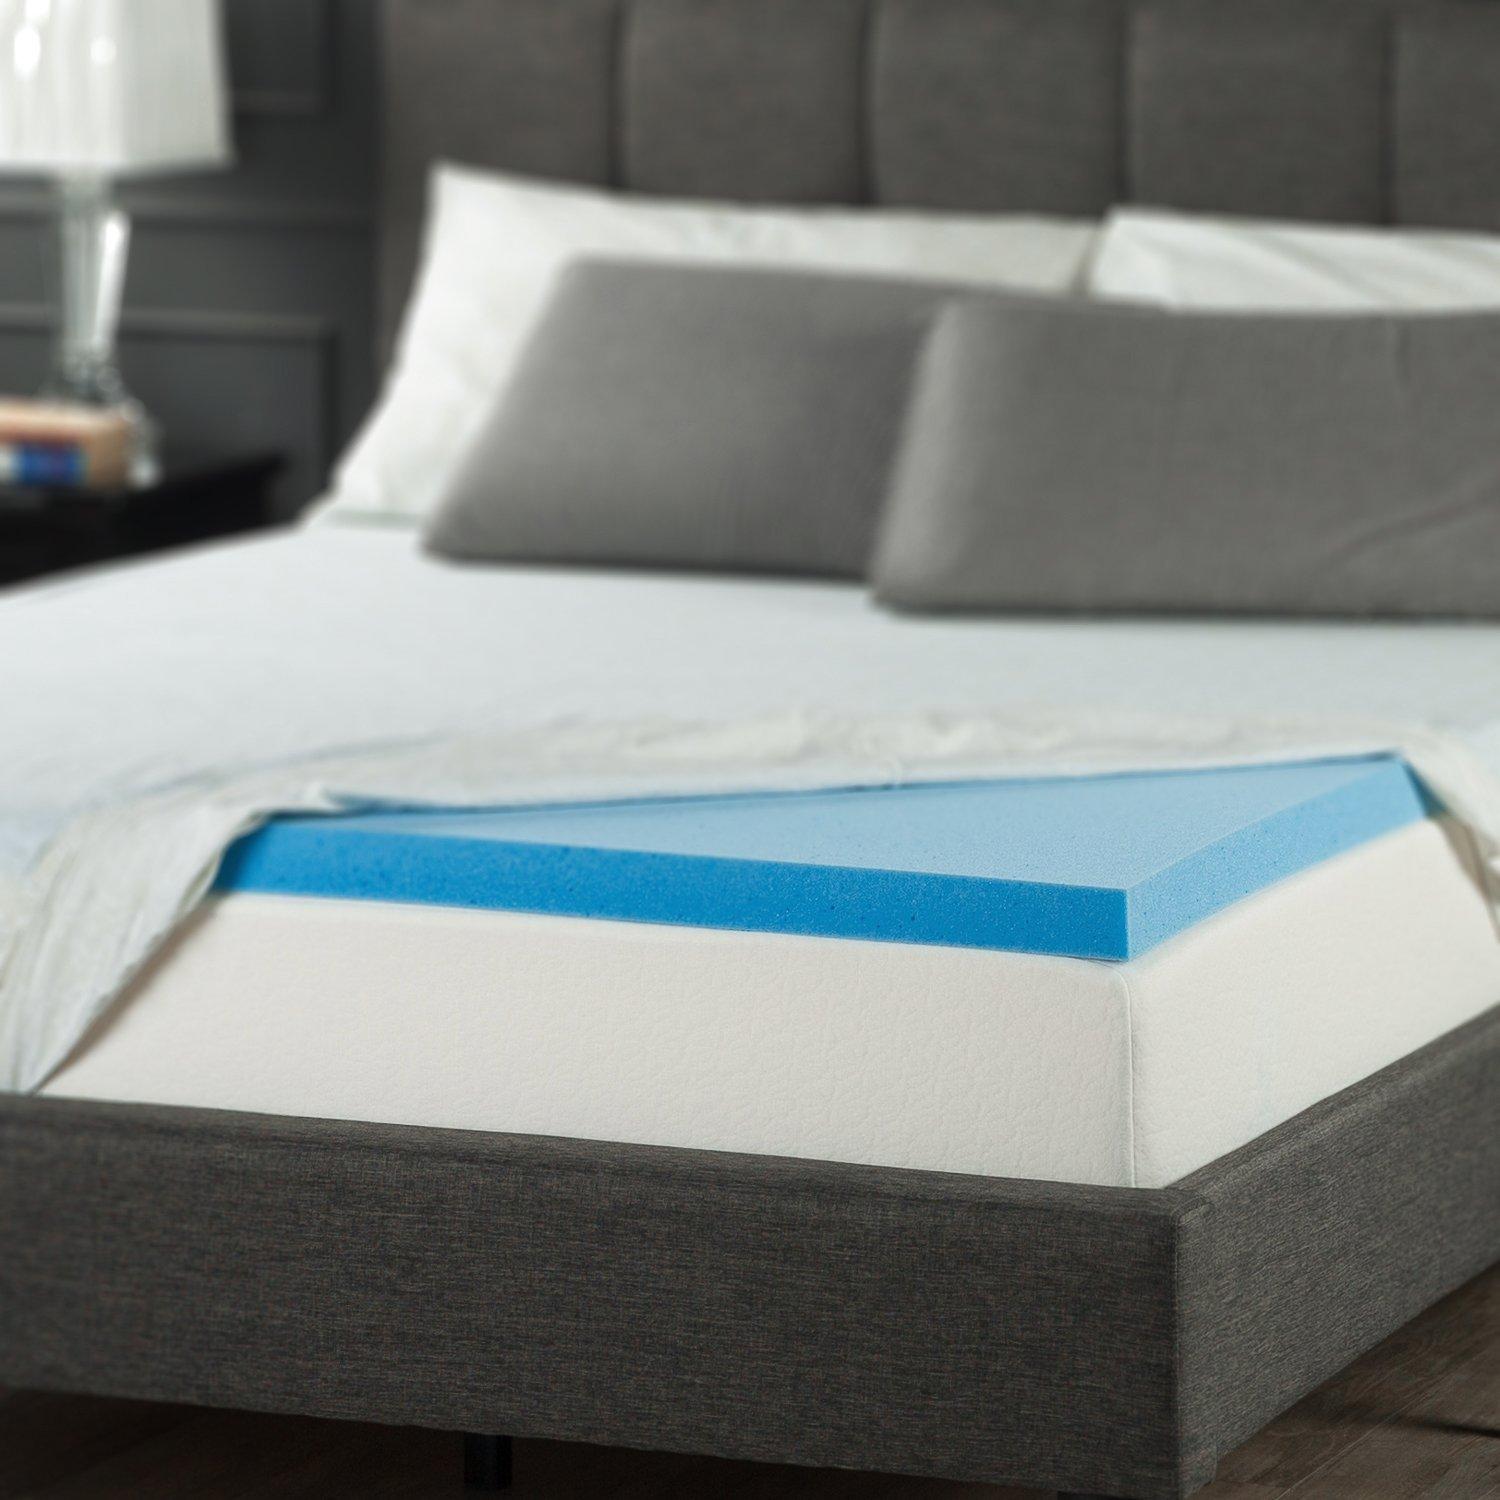 foam pad bath bed beyond mattresses amazon pillow memory of xl size mattress and top full topper twin sealy queen